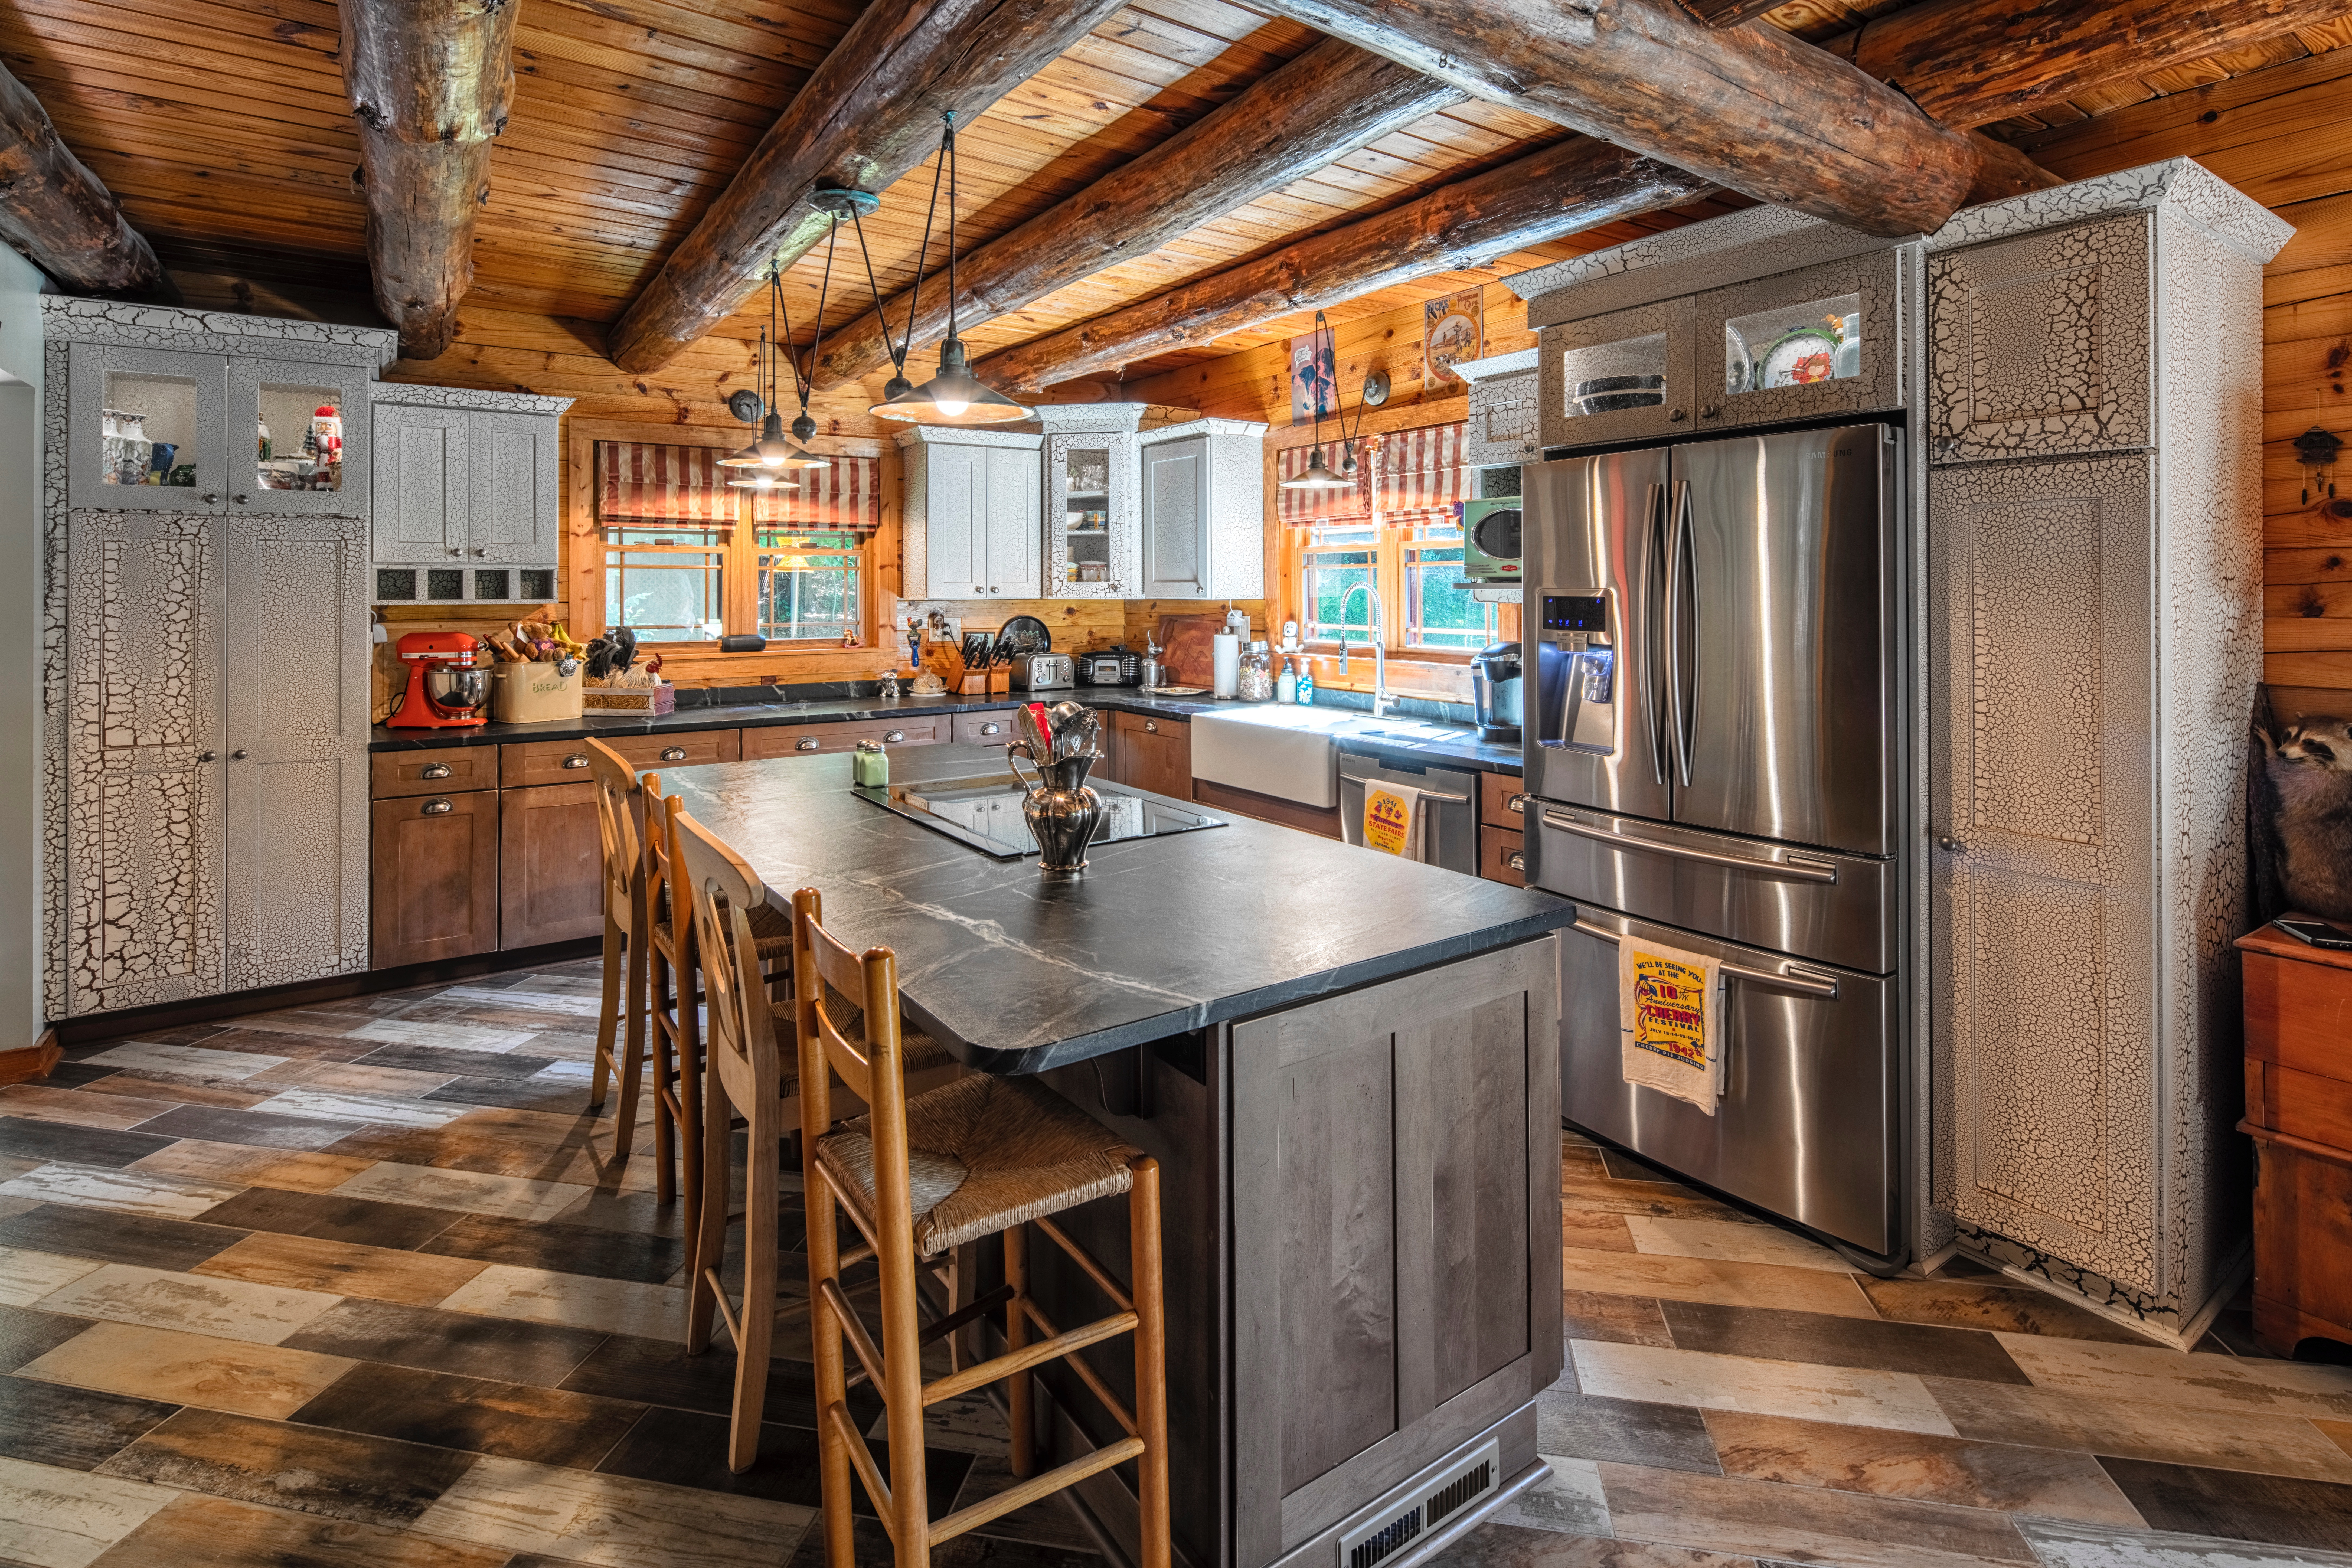 Custom speckled cabinets with multicolored wood grain floor tile. This kitchen brings an Adirondack cabin feeling to the best room in the house!